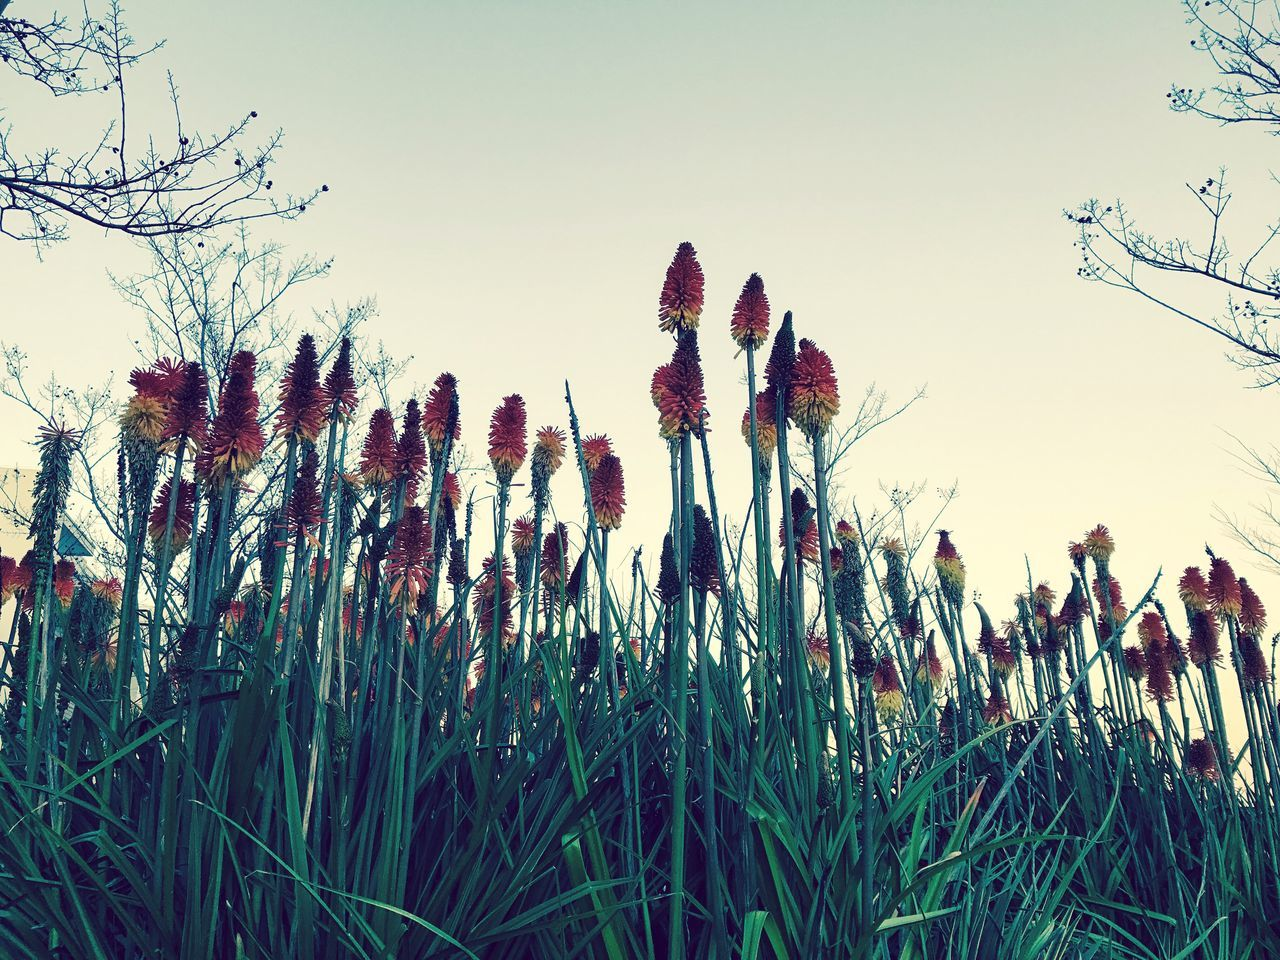 growth, nature, plant, tranquility, beauty in nature, no people, outdoors, clear sky, day, field, grass, sky, flower, close-up, freshness